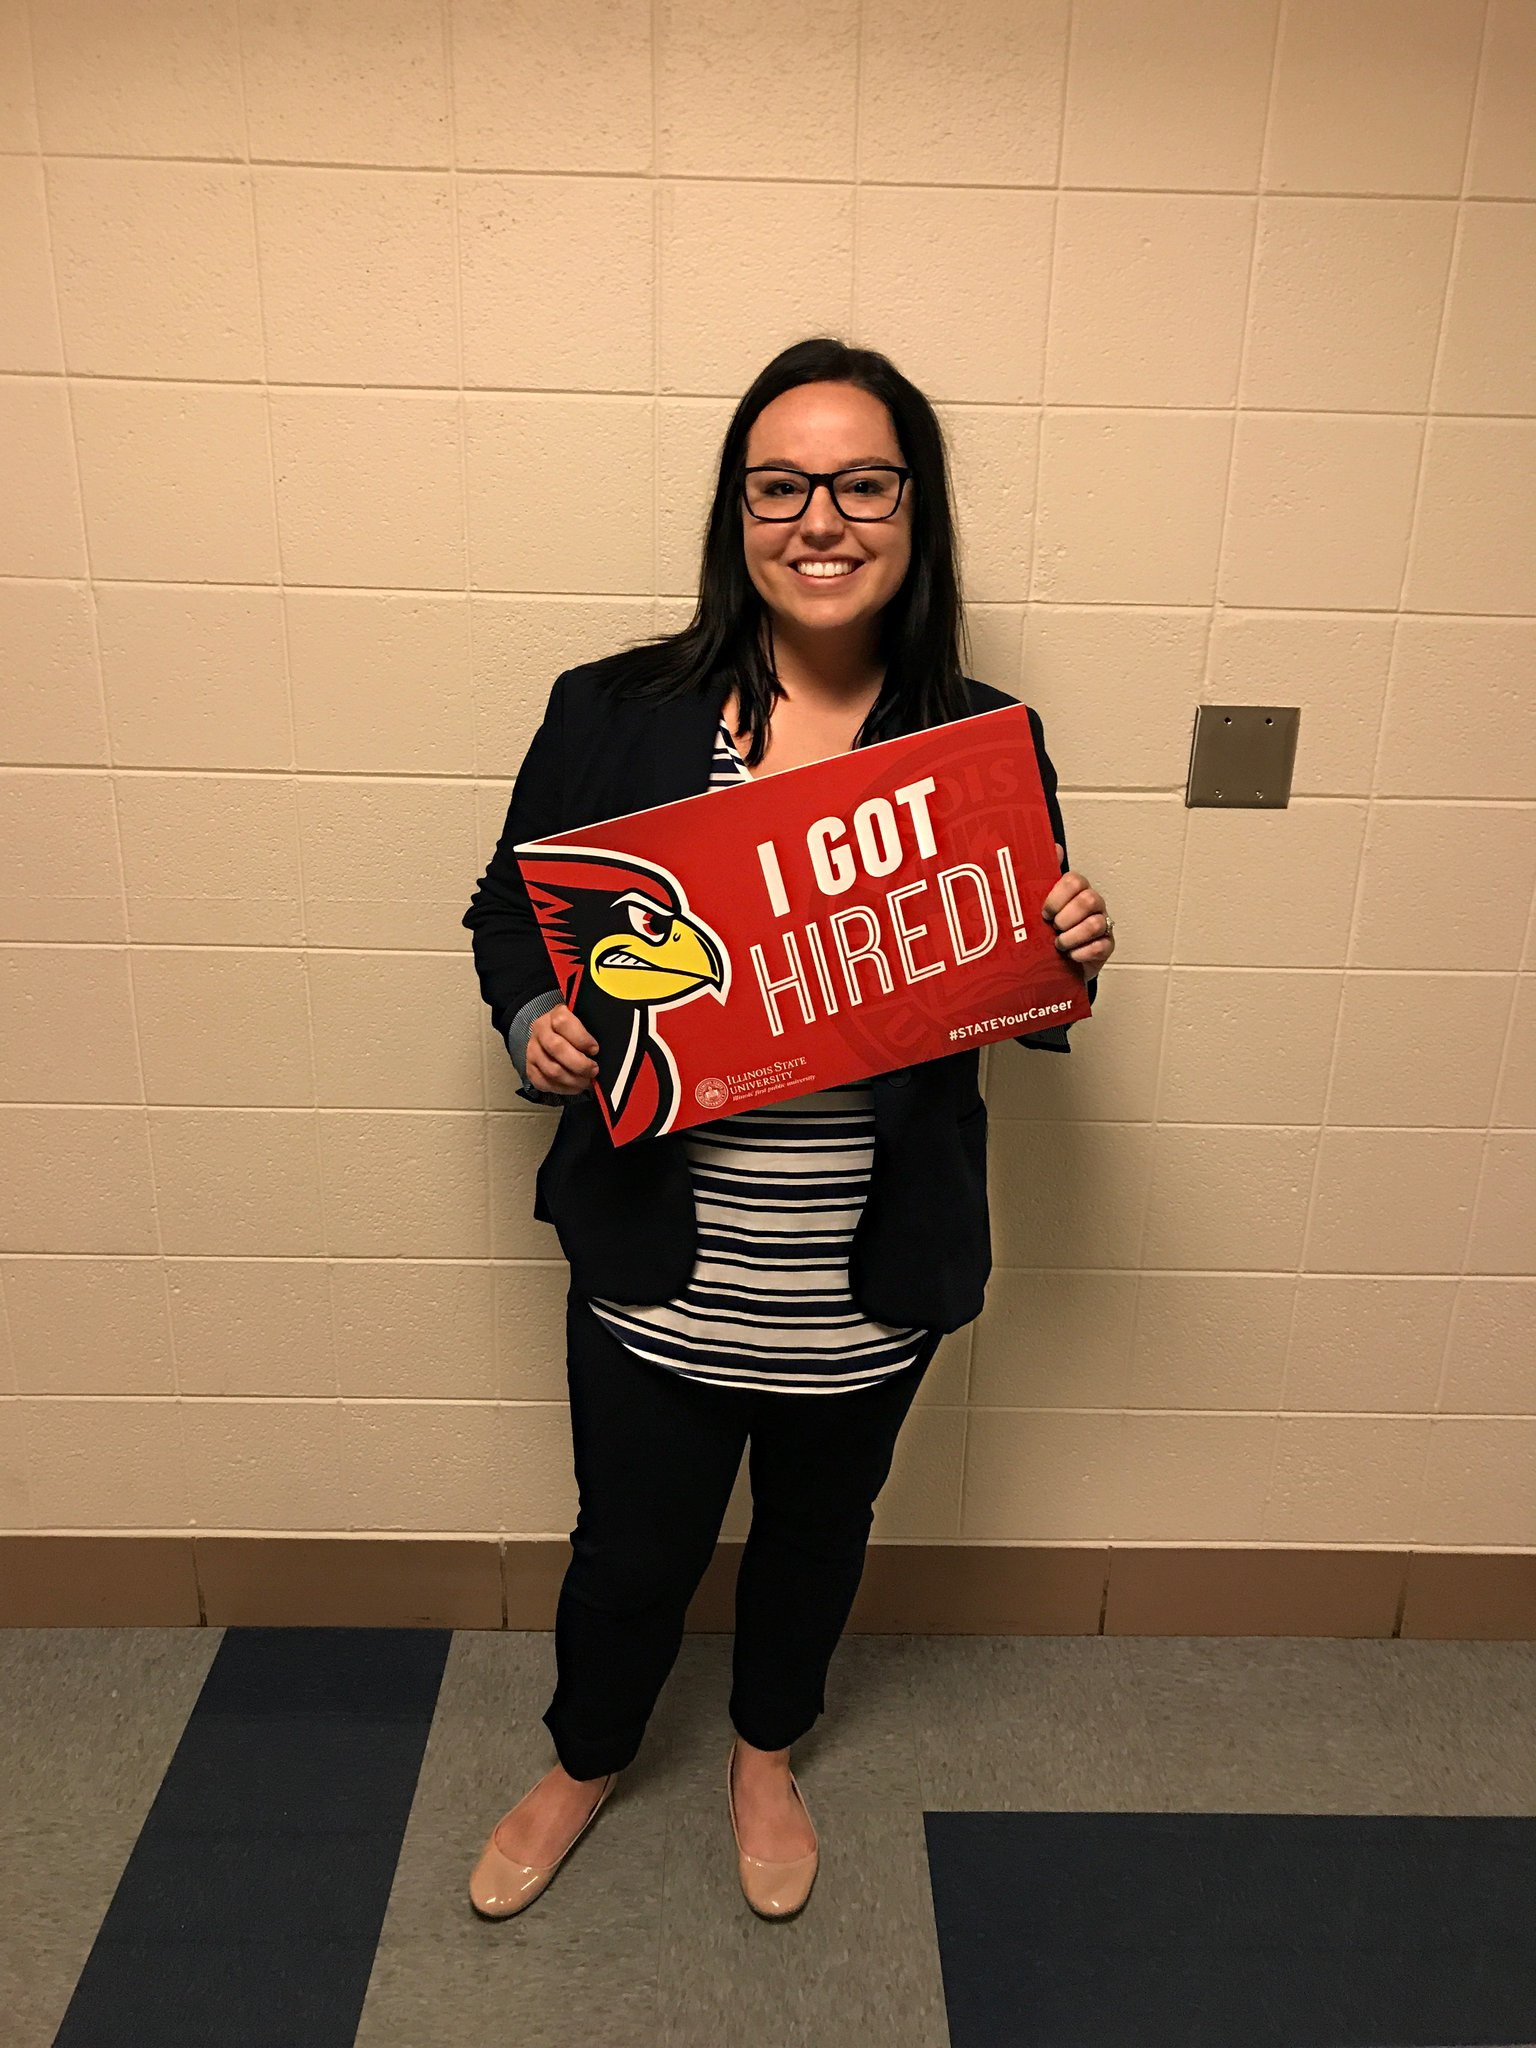 Congratulations to construction mgmt. major, Jordyn Cikesh. She has been hired at BUILTECH as a project engineer!! #STATEYourCareer https://t.co/iYqhNLl5iD